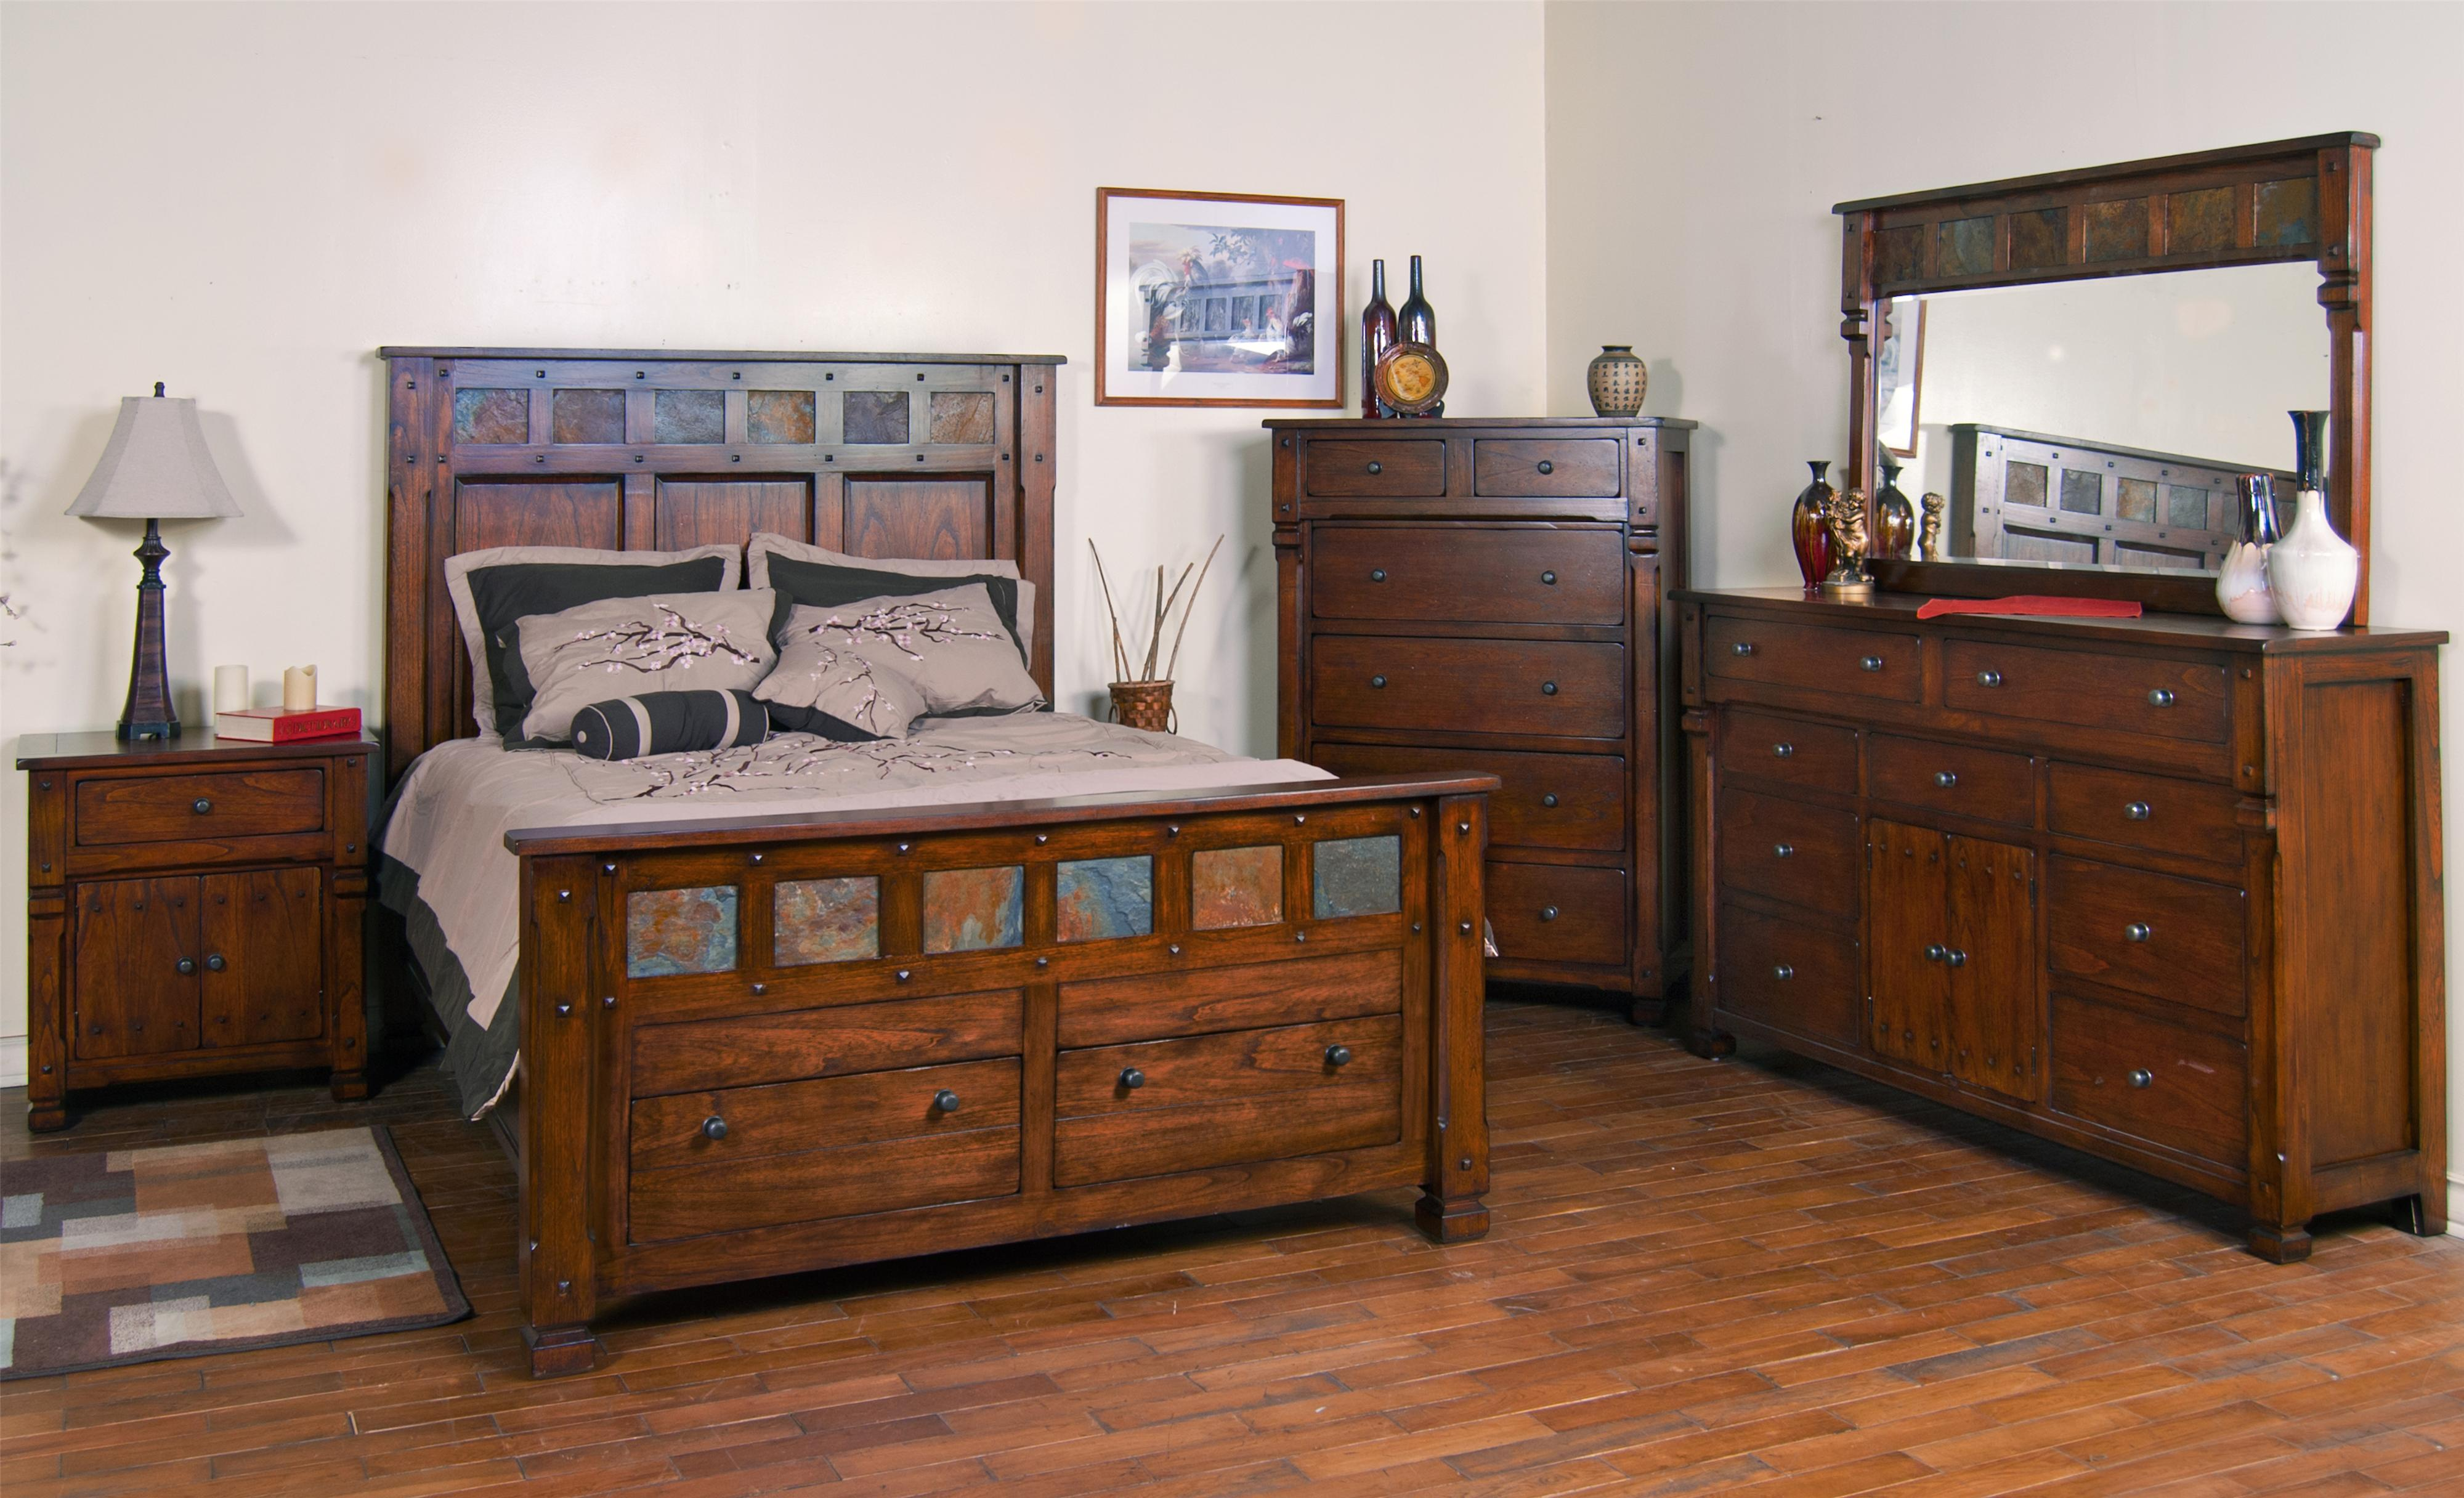 Sunny Designs Santa Fe 2pc Bedroom Set with Queen Storage Bed | The ...